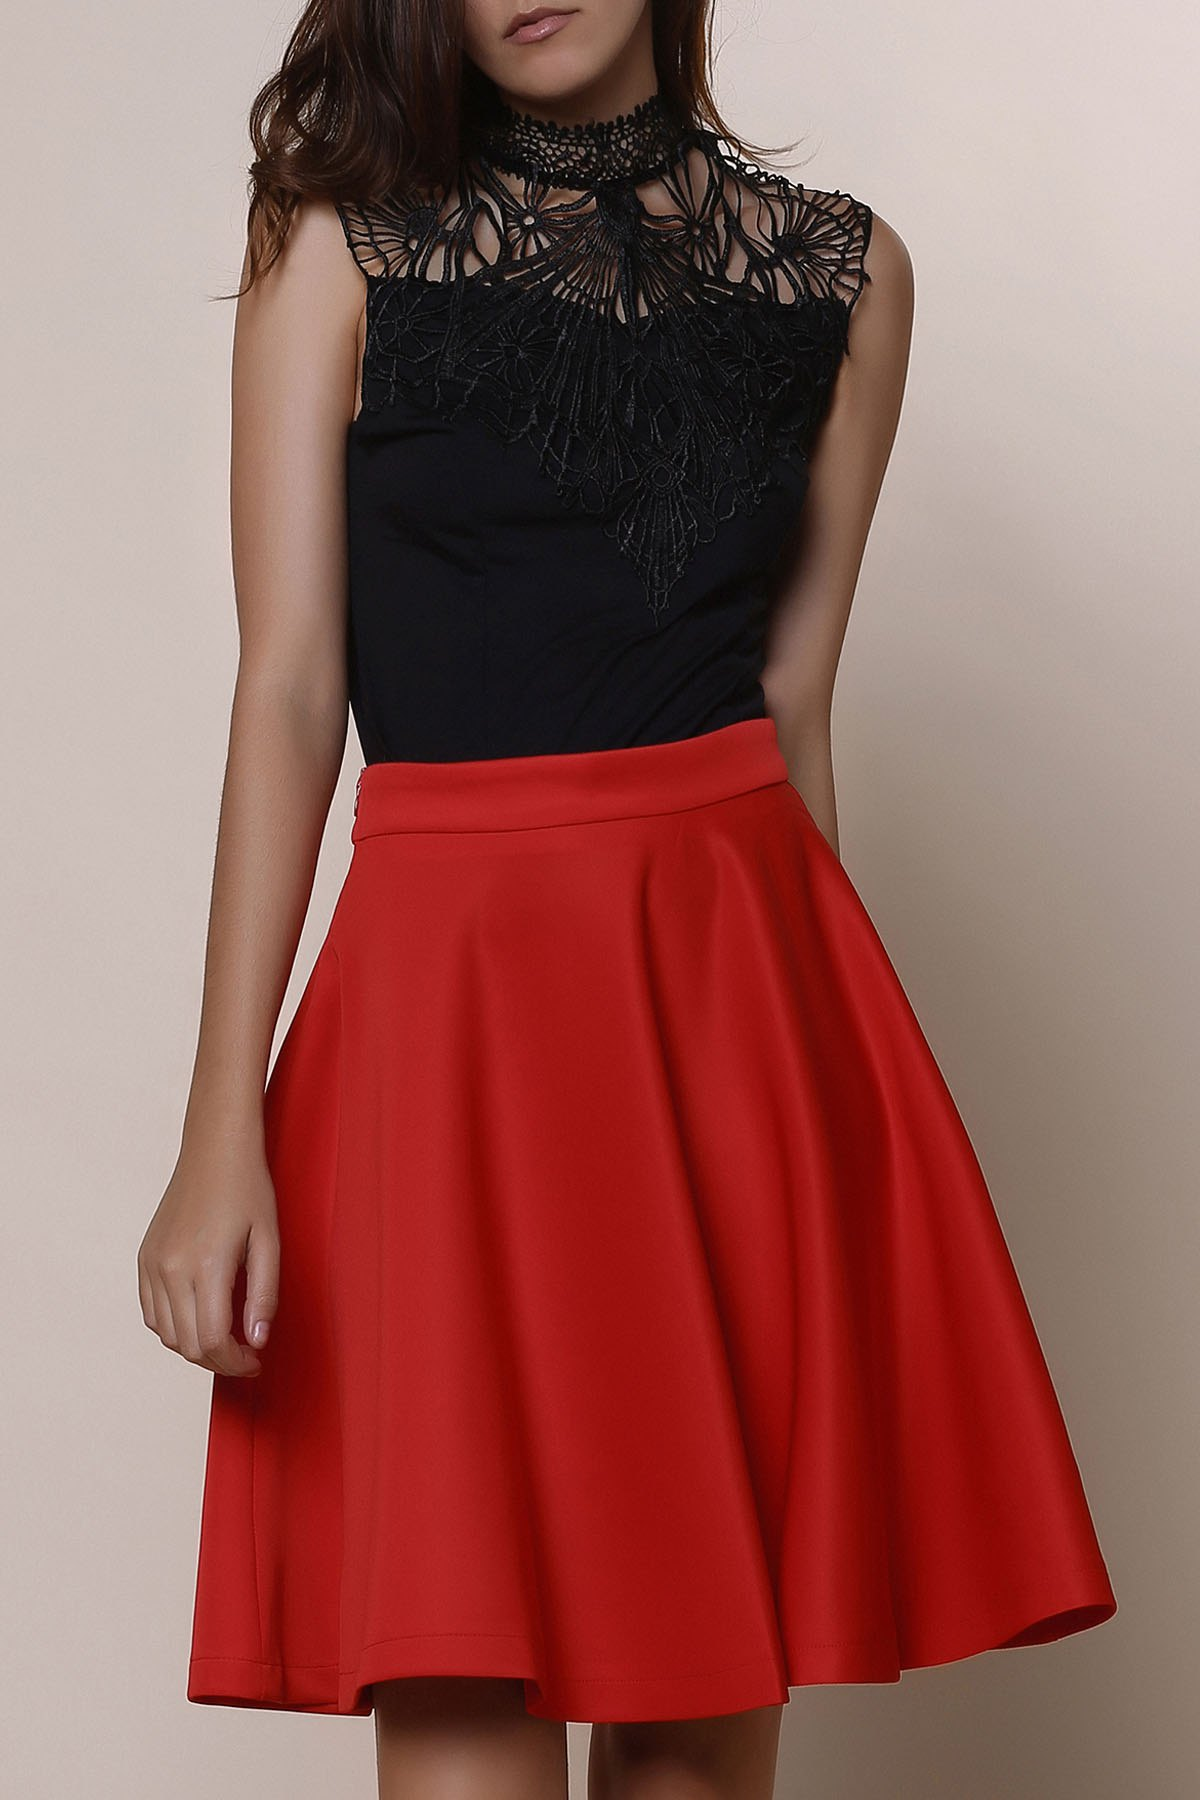 Stylish Women's Solid Color Flare Skirt - RED S